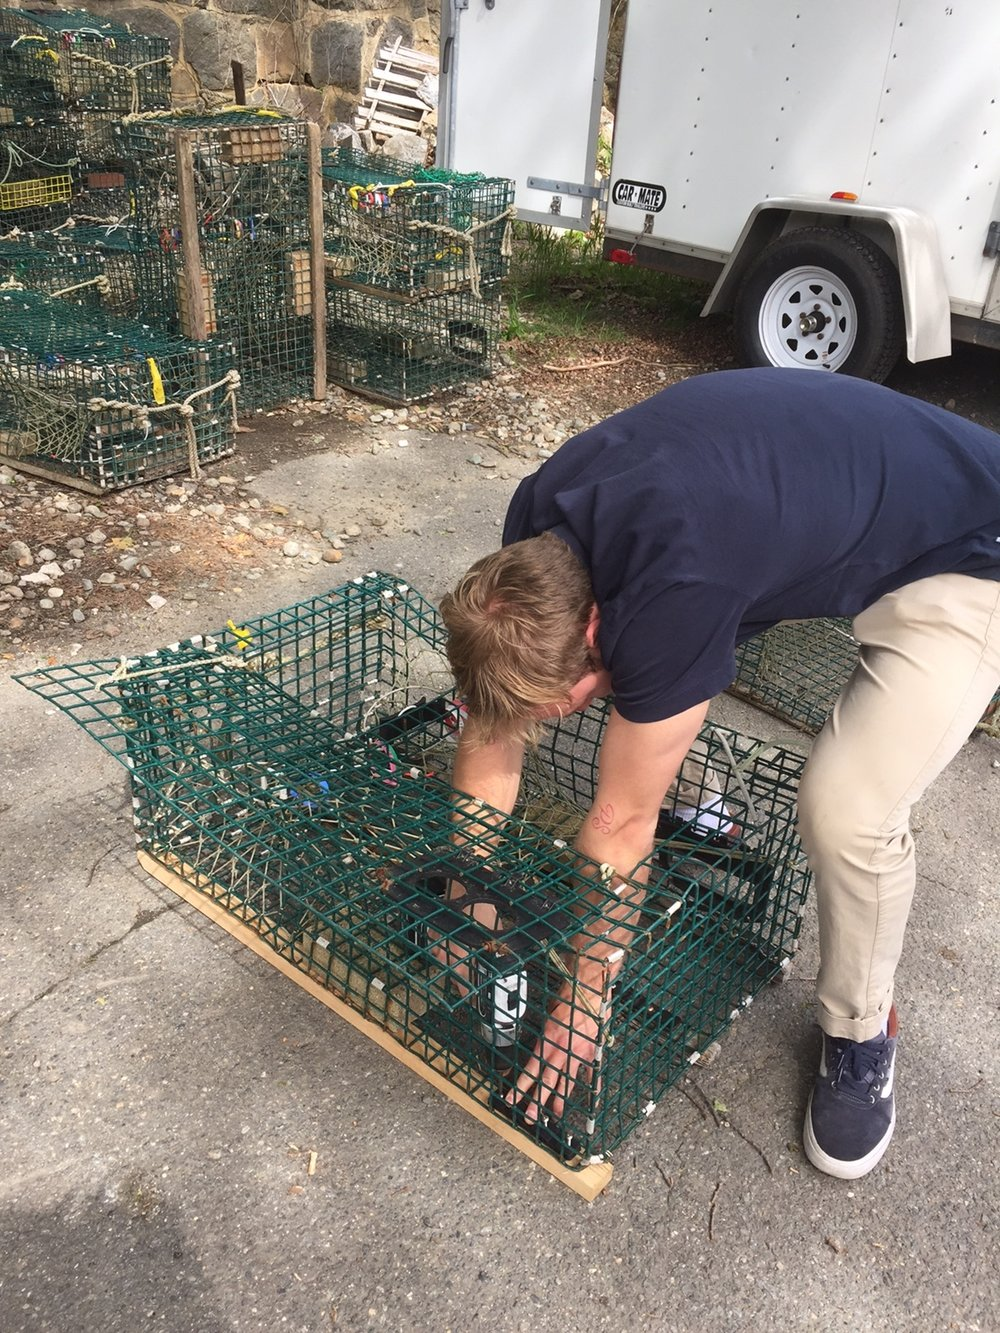 Intern Chilly assembles lobster traps in preparation for the SEA: Marine Life Exploration program; later he and Program Leader Skylar headed out on Chilly's boat to place the traps so that they could be pulled up during the program.